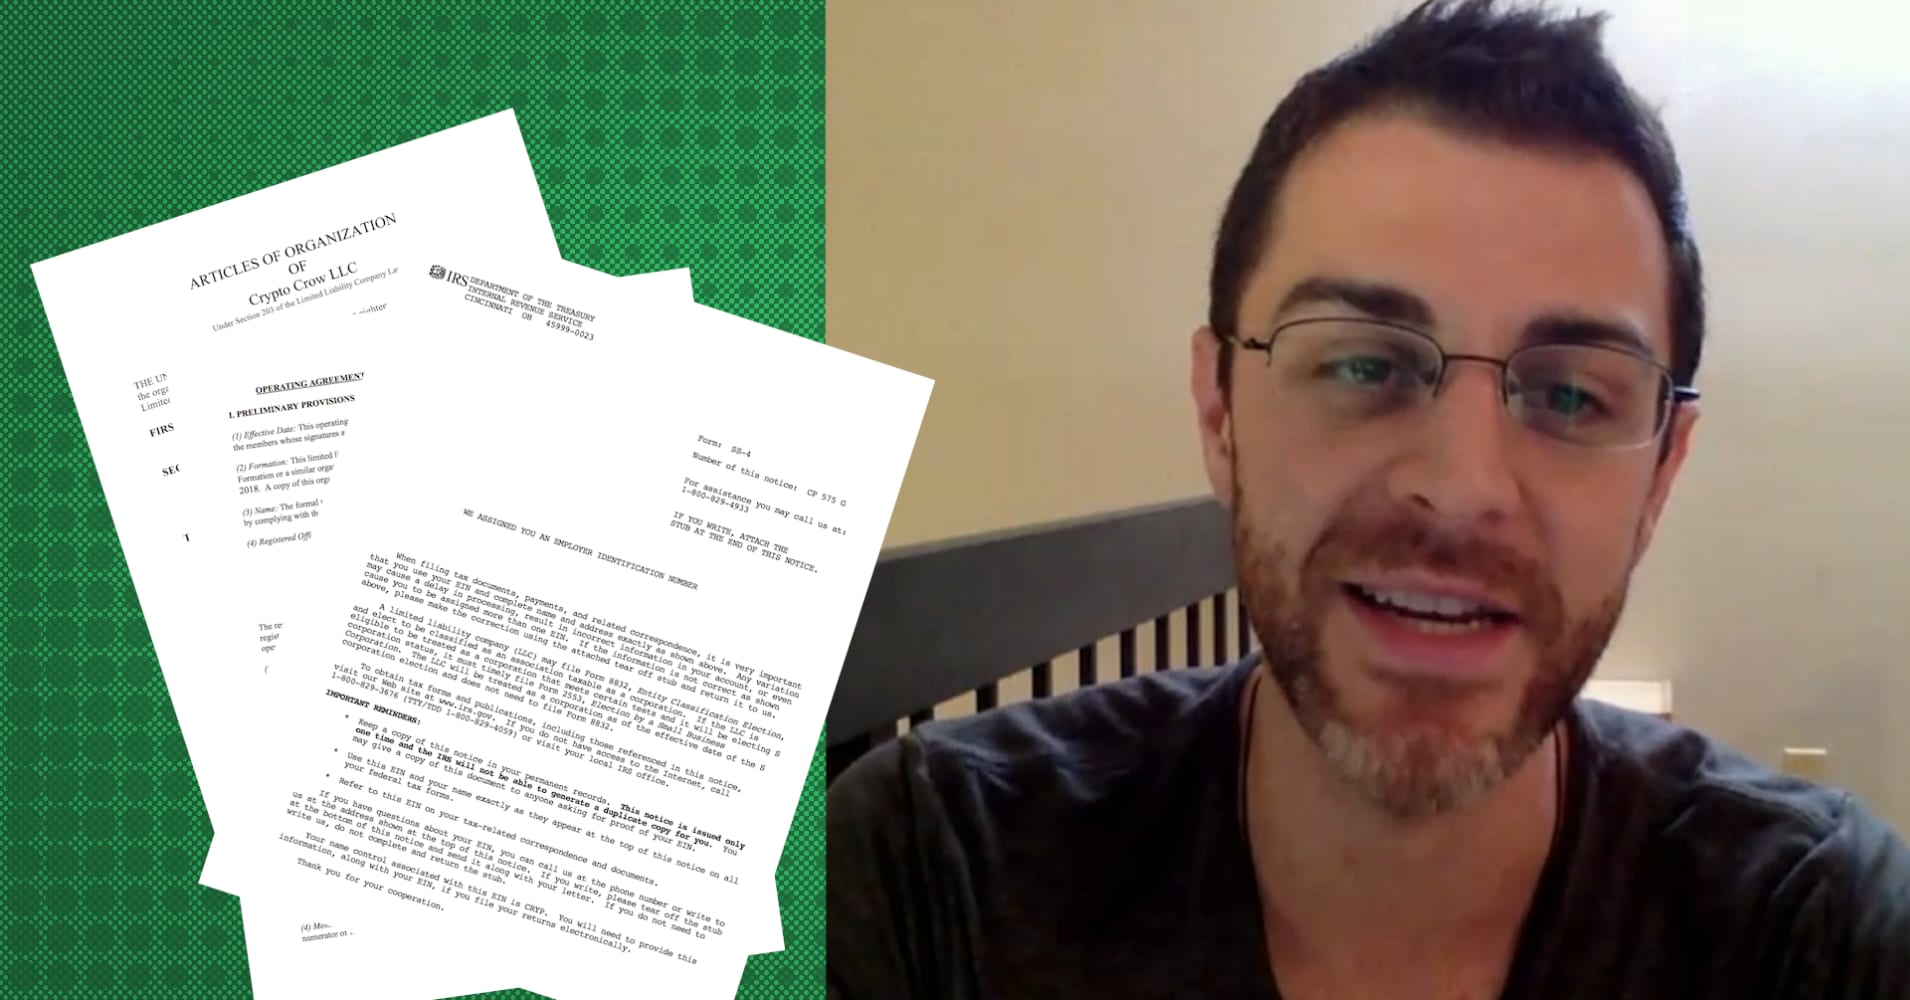 Llc University Founder How To Form An Llc The Right Way